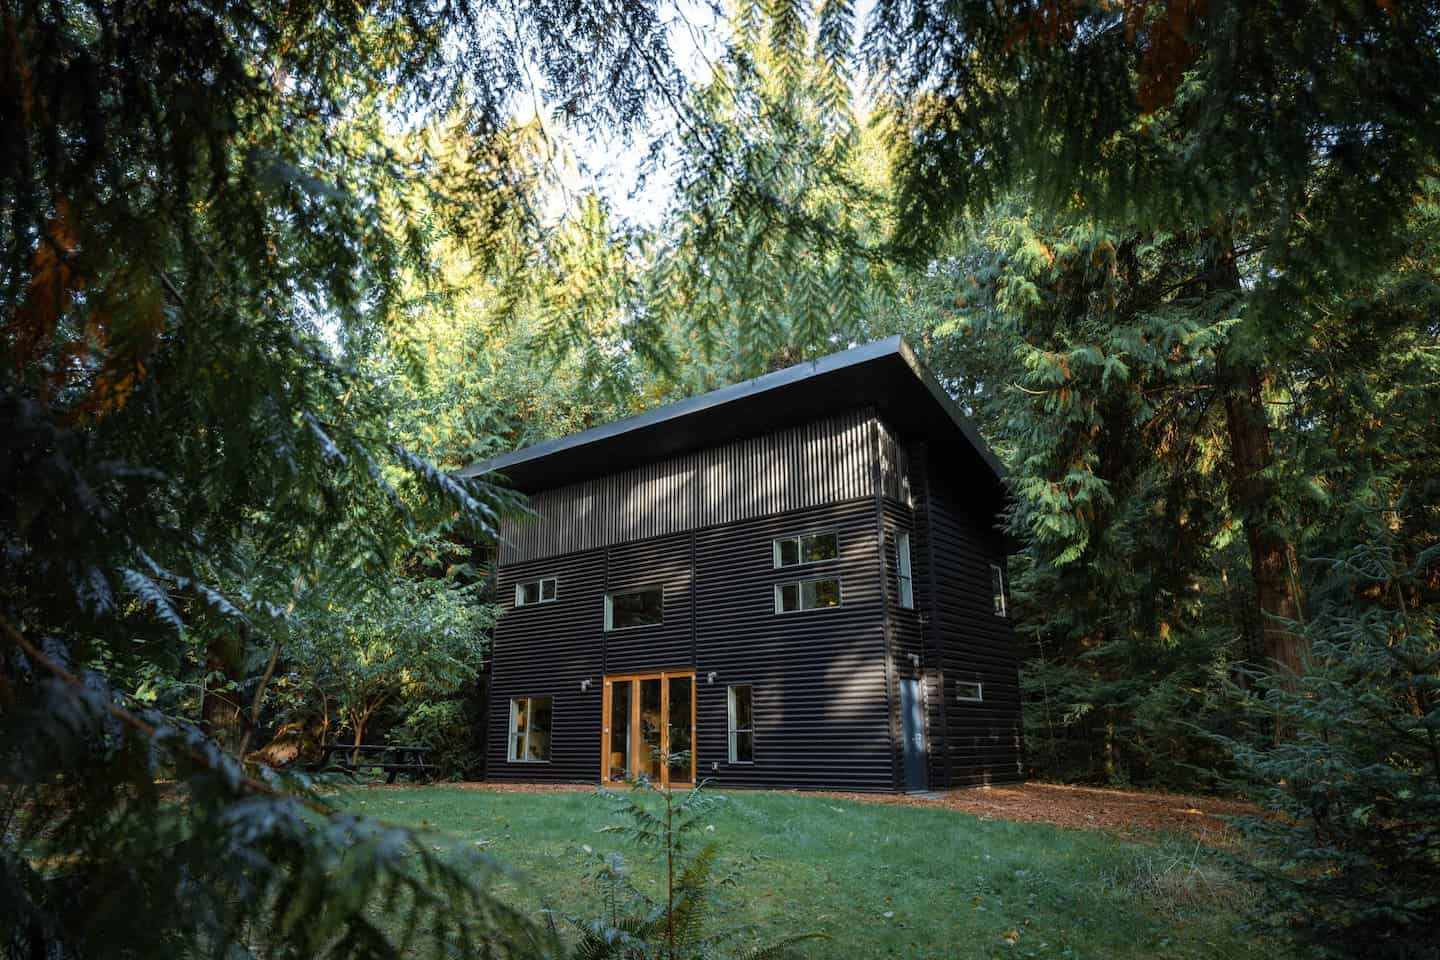 Ralstin House - Cabins to Rent in the San Juans, Washington